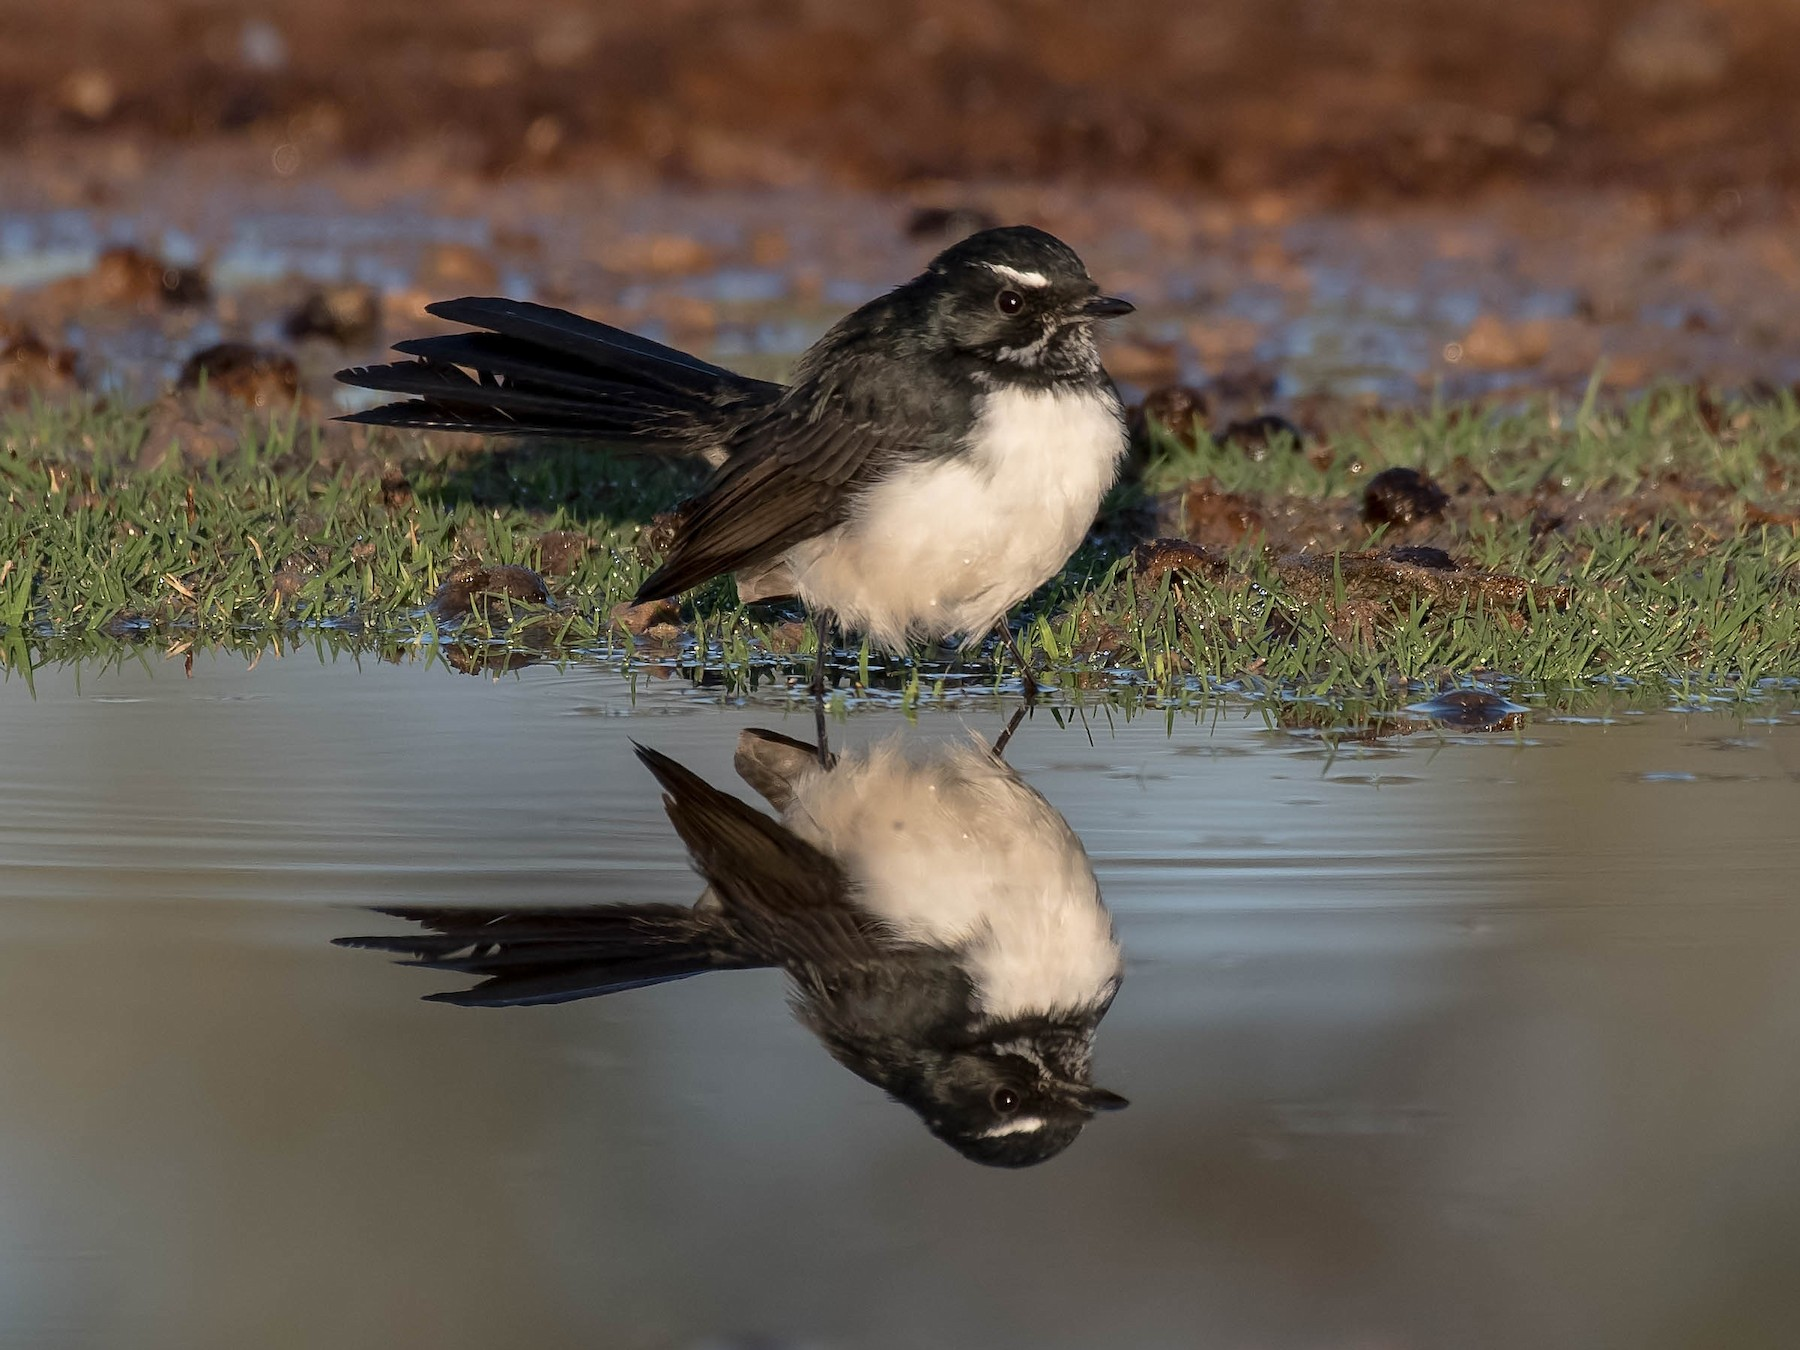 Willie-wagtail - Terence Alexander